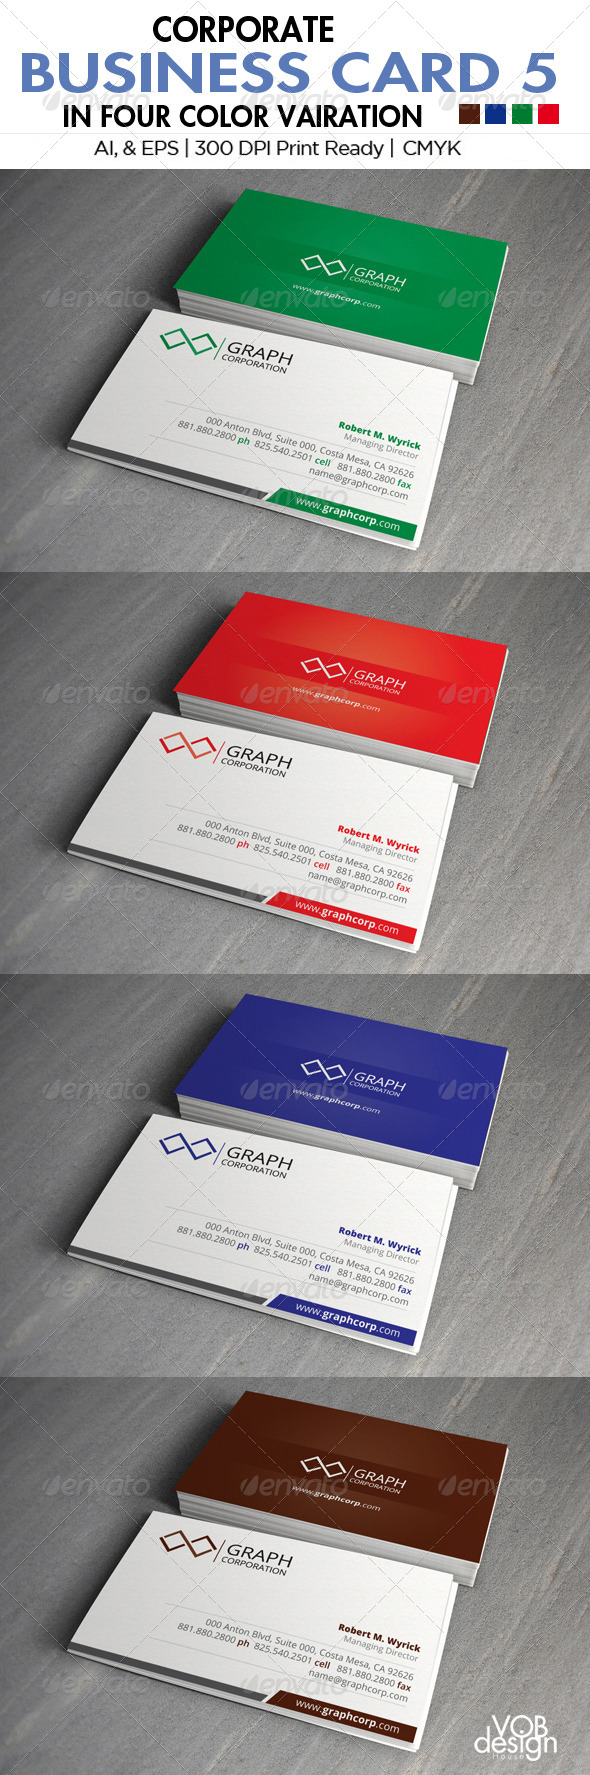 GraphicRiver Corporate Business Card 5 5963986